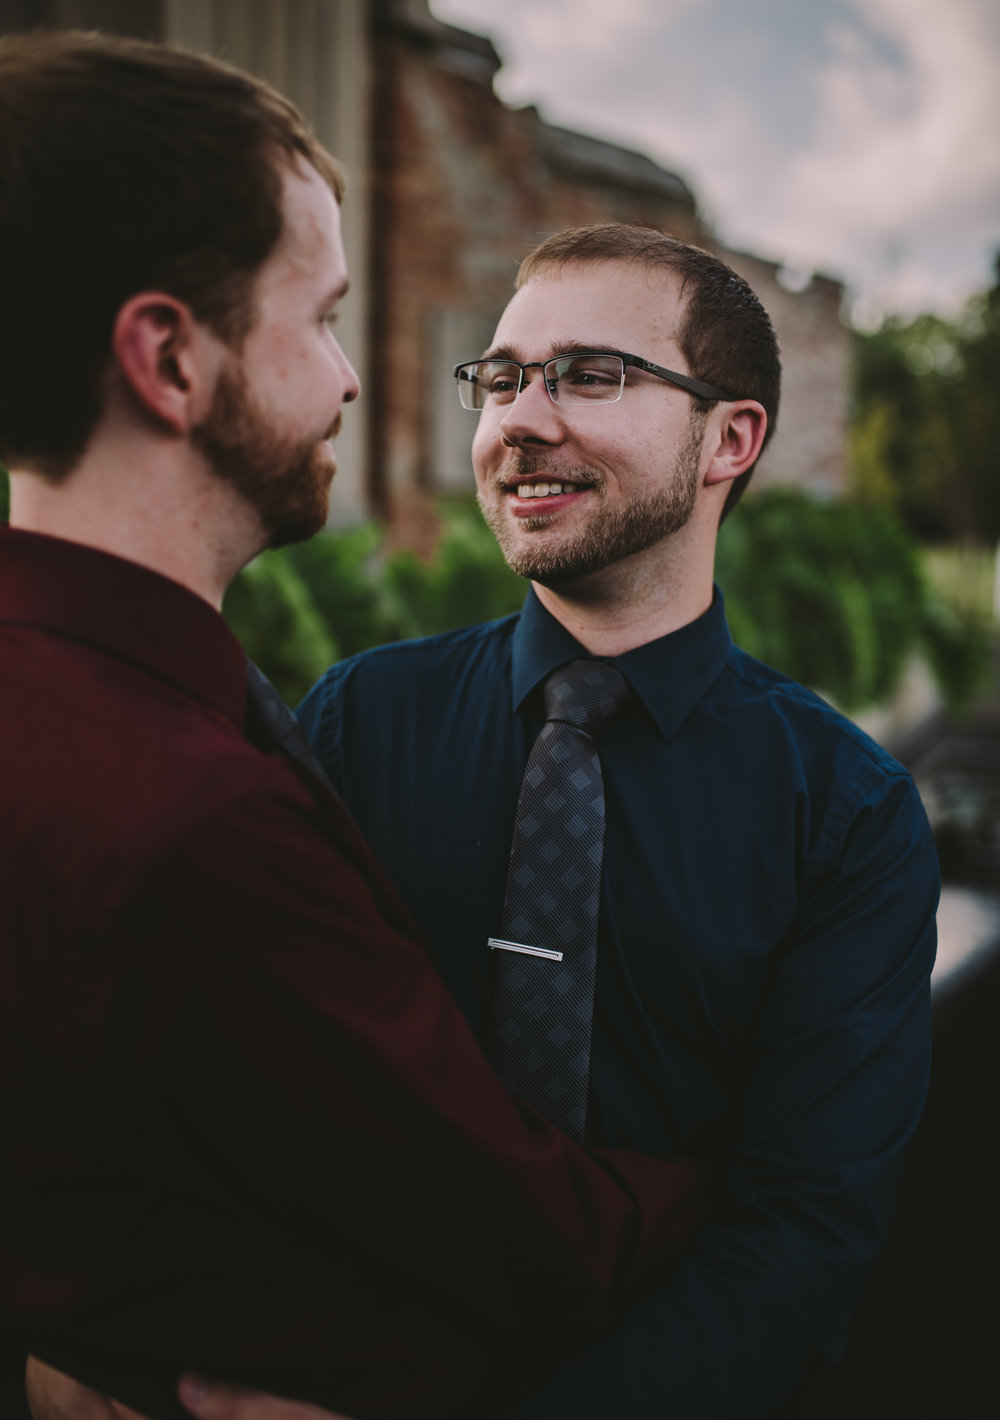 Brett+Christian_WeddingCeremony_September2017_IndianaWeddingPhotographer_SamanthaRosePhotography_-132.jpg